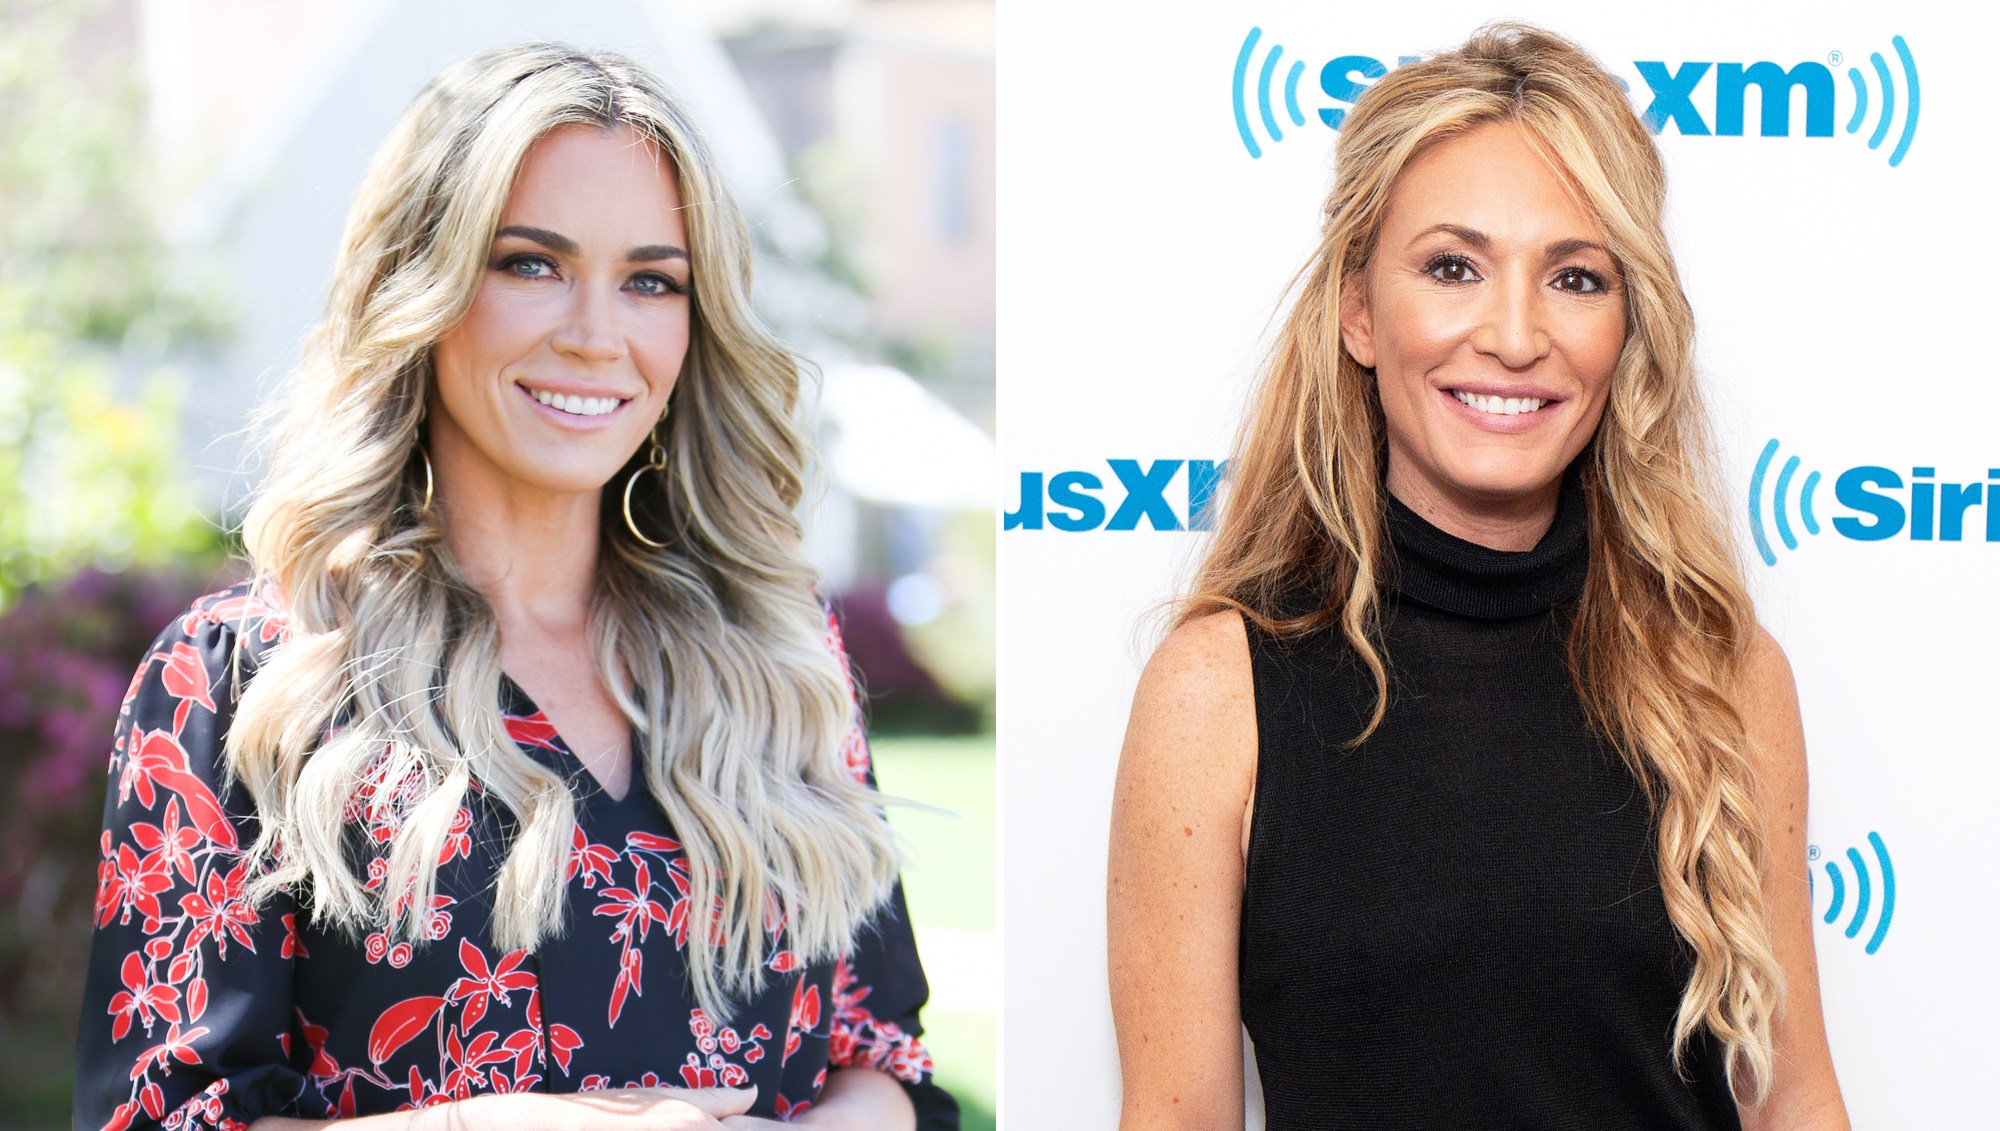 Teddi Mellencamp and Below Deck's Kate Chastain Get Into It Over 'RHOBH' Star's Job as an 'Accountability Coach'